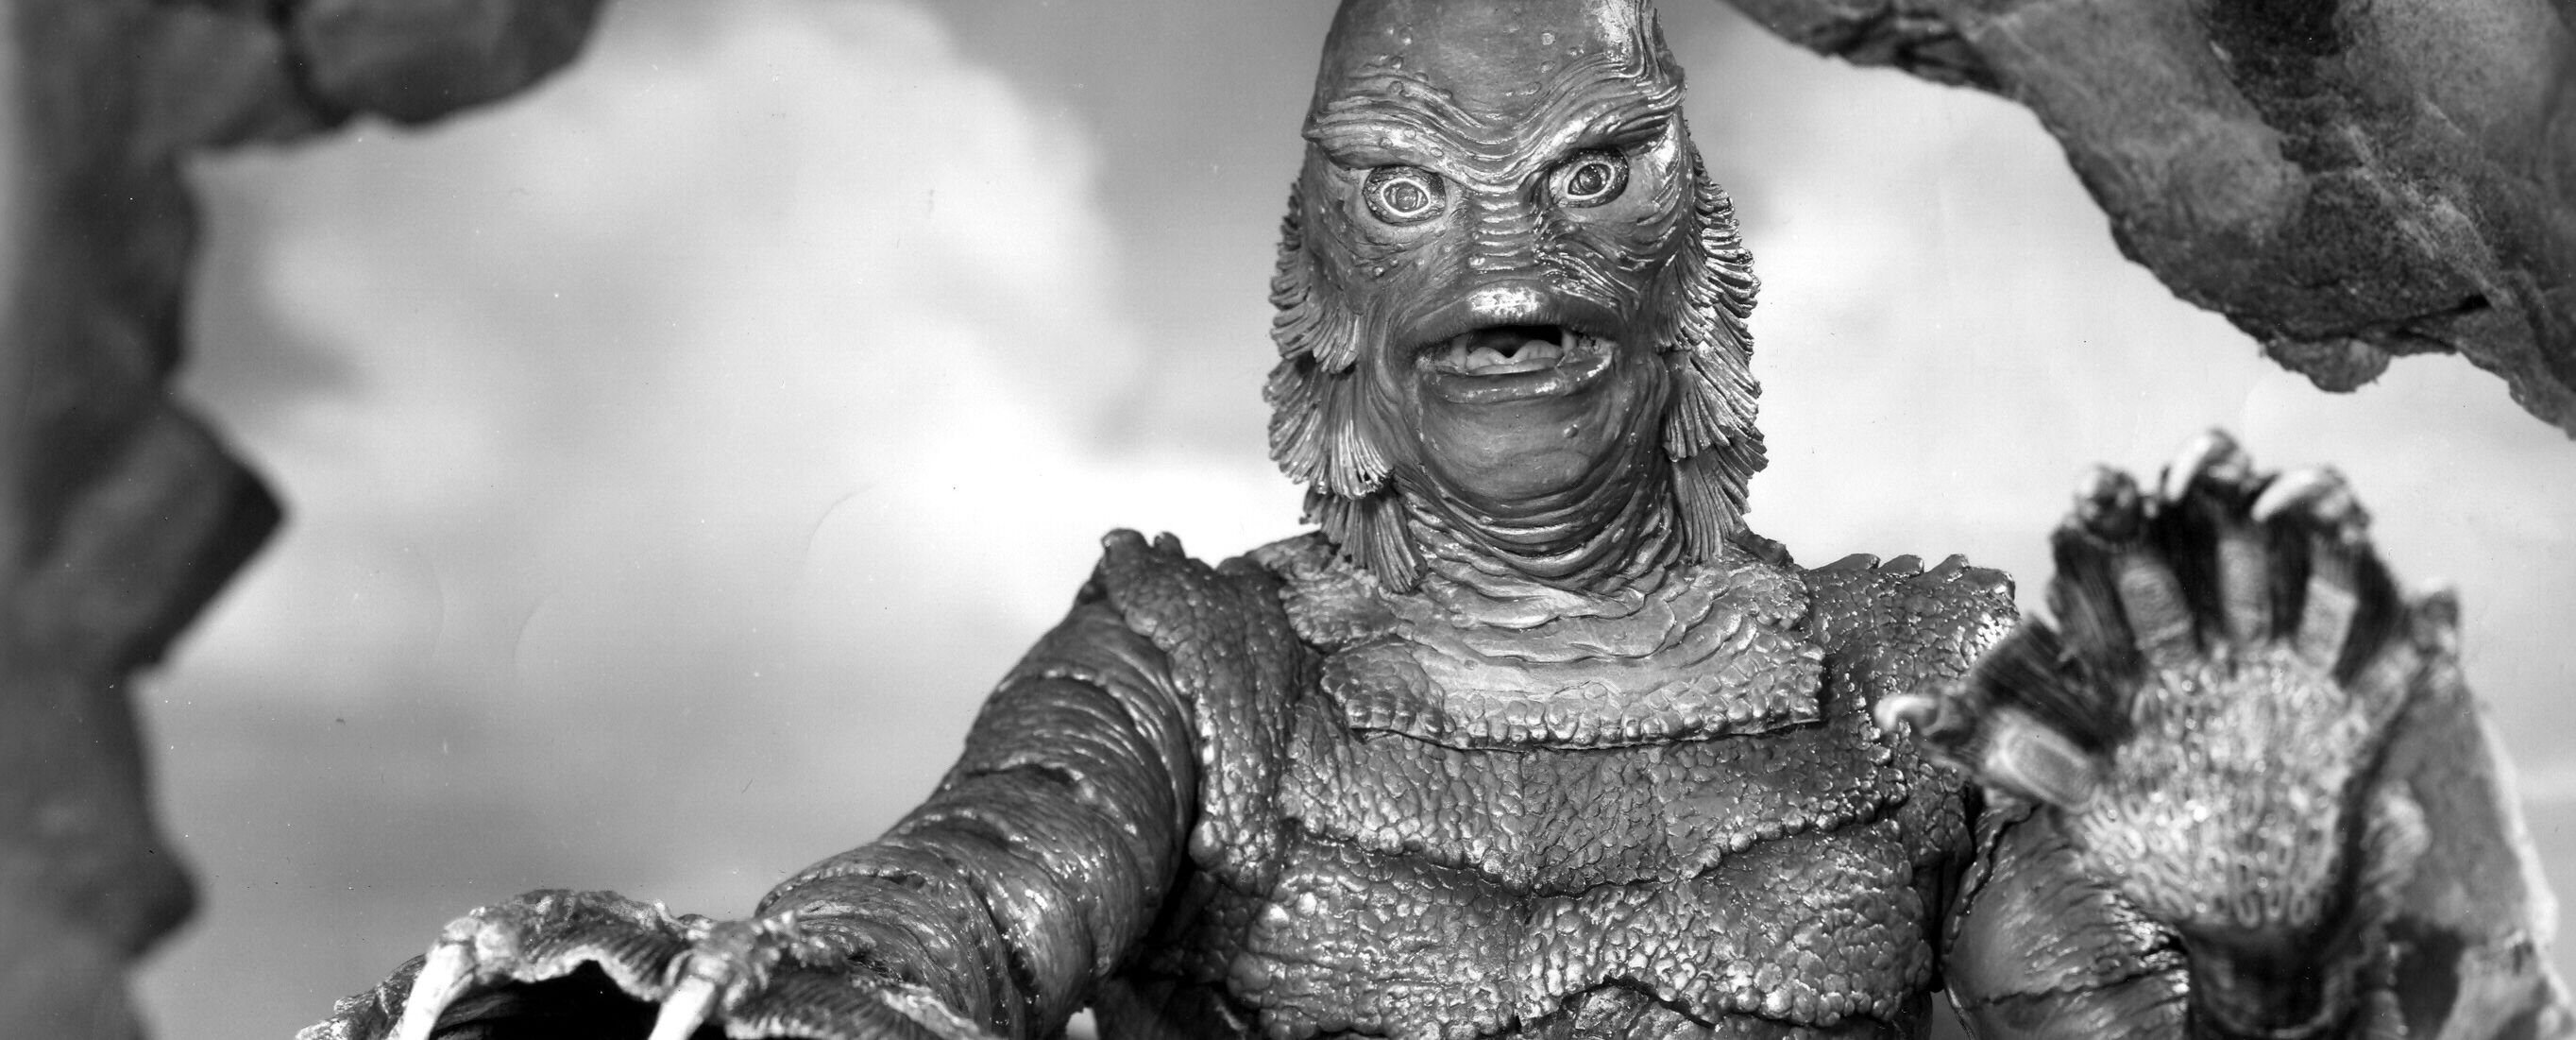 An image from Creature from the Black Lagoon